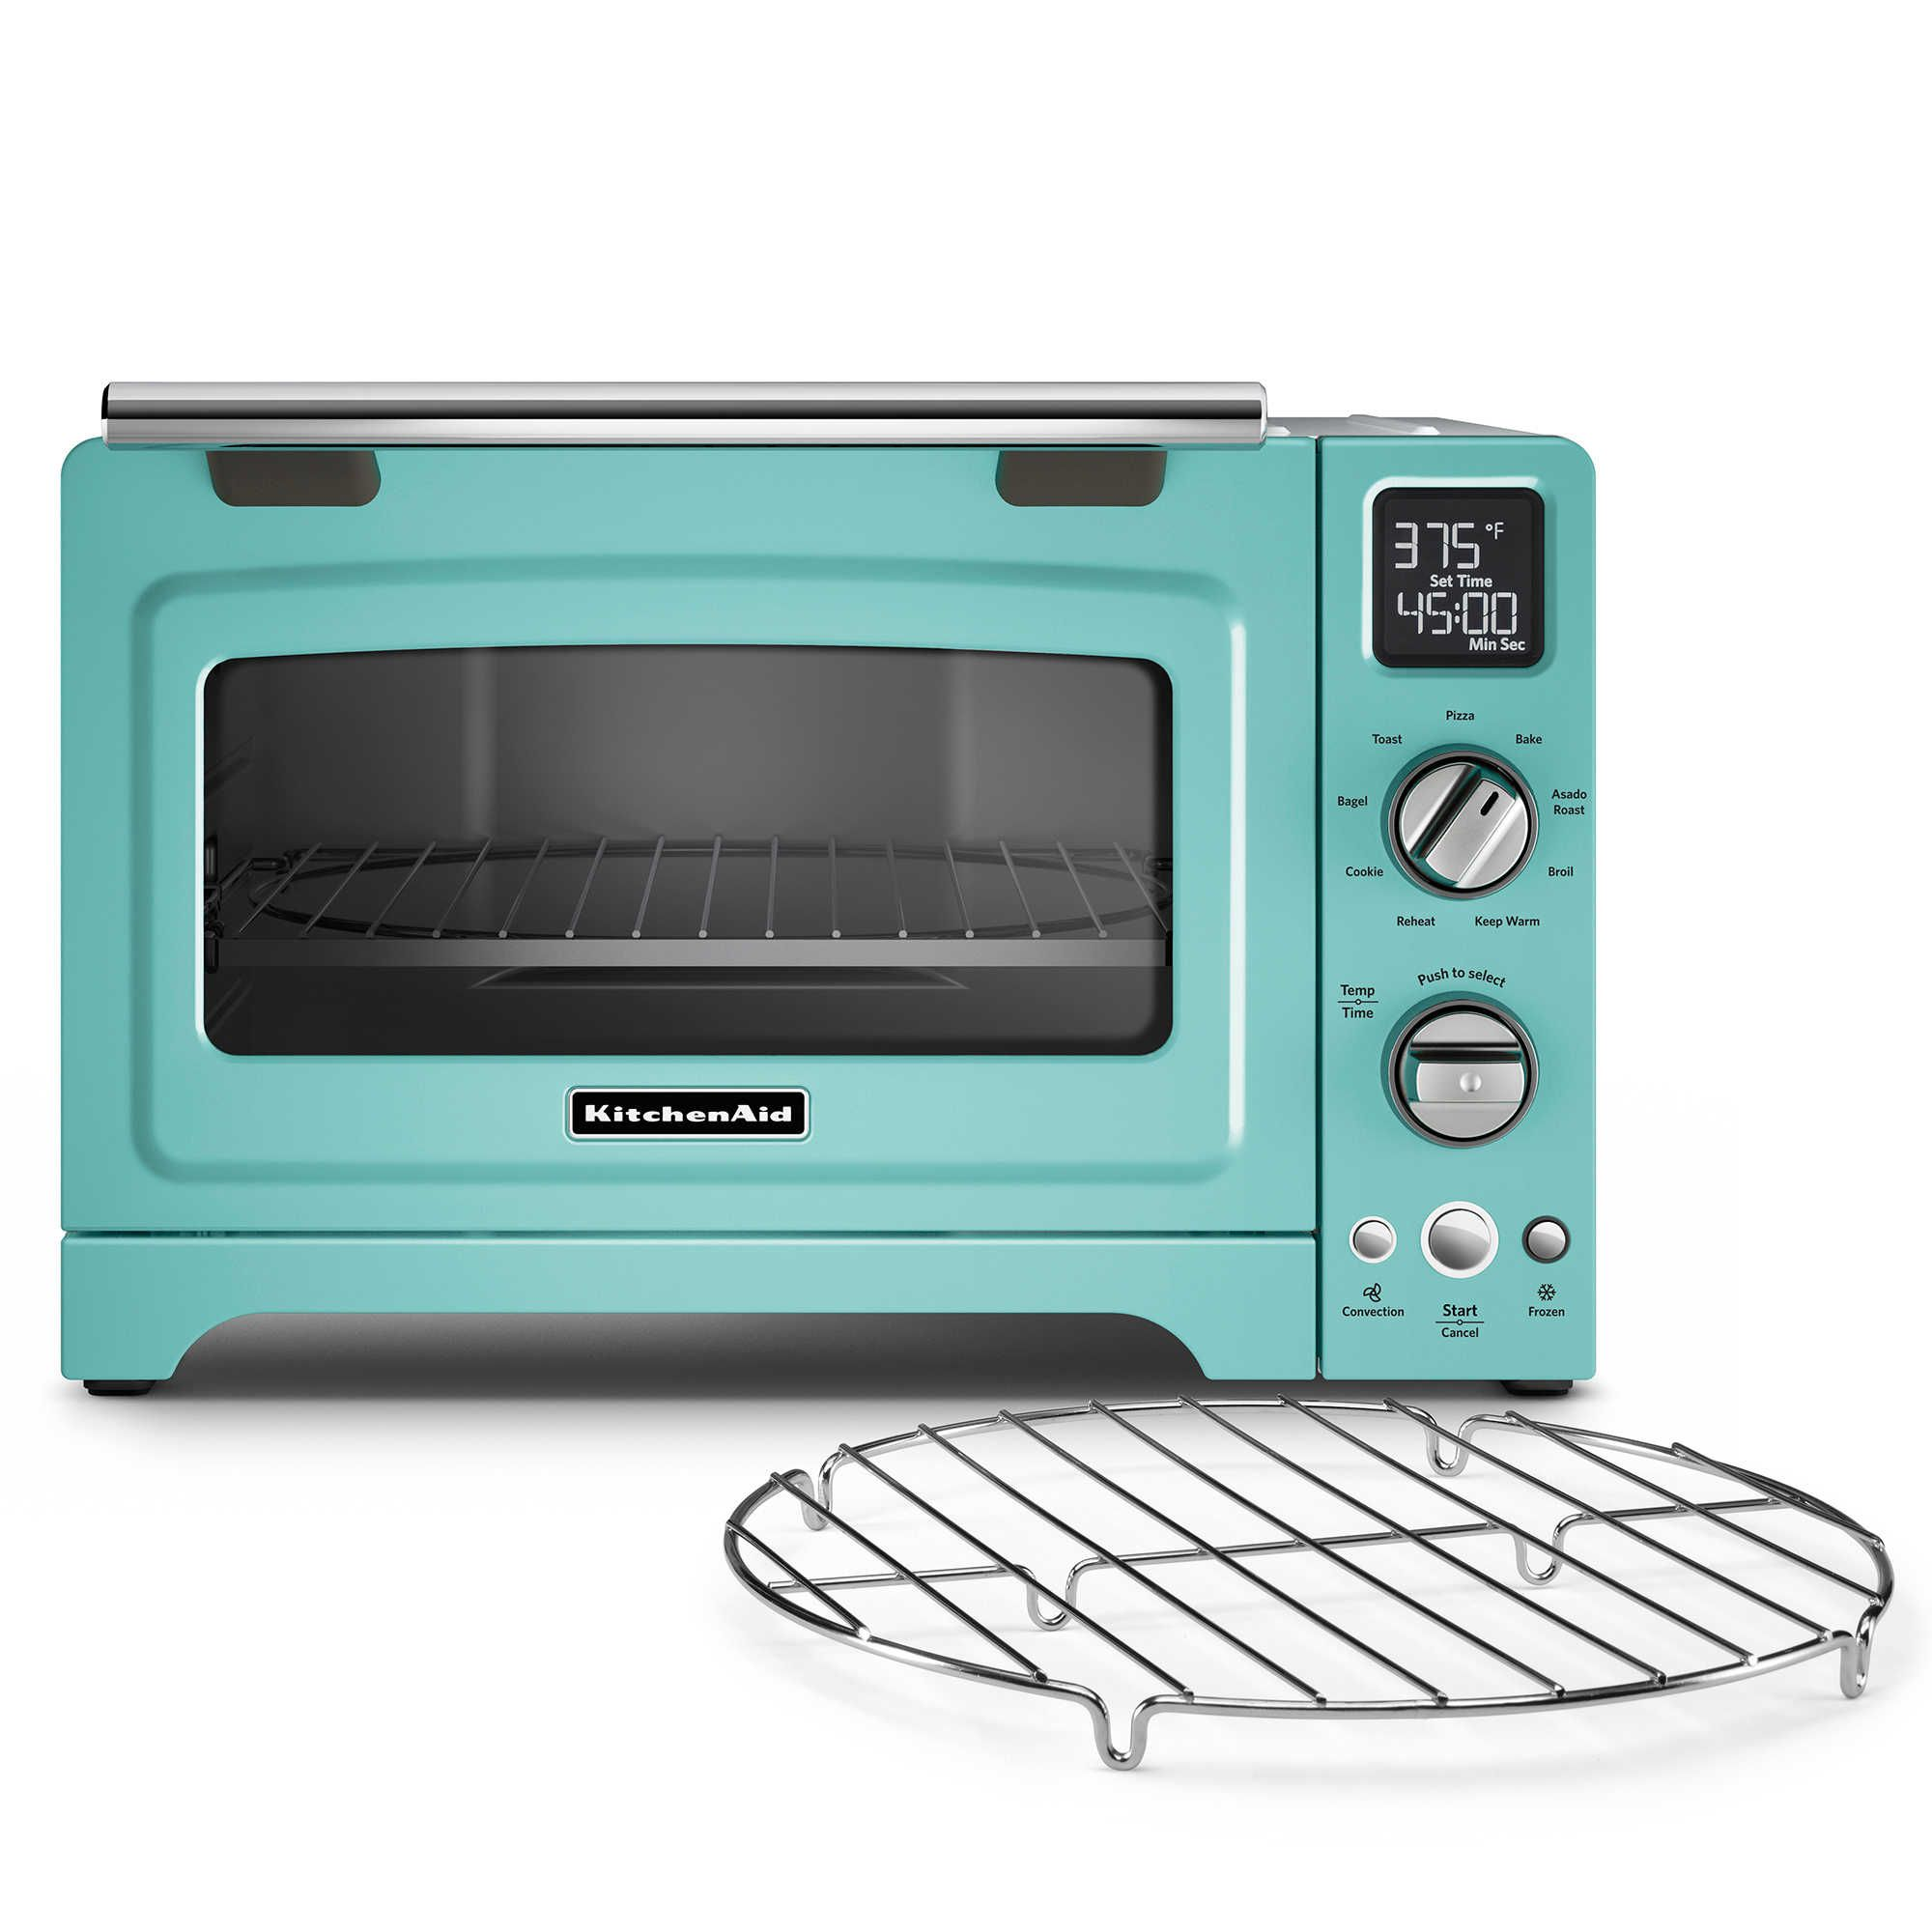 Kitchenaid 12 Inch Convection Digital Countertop Oven